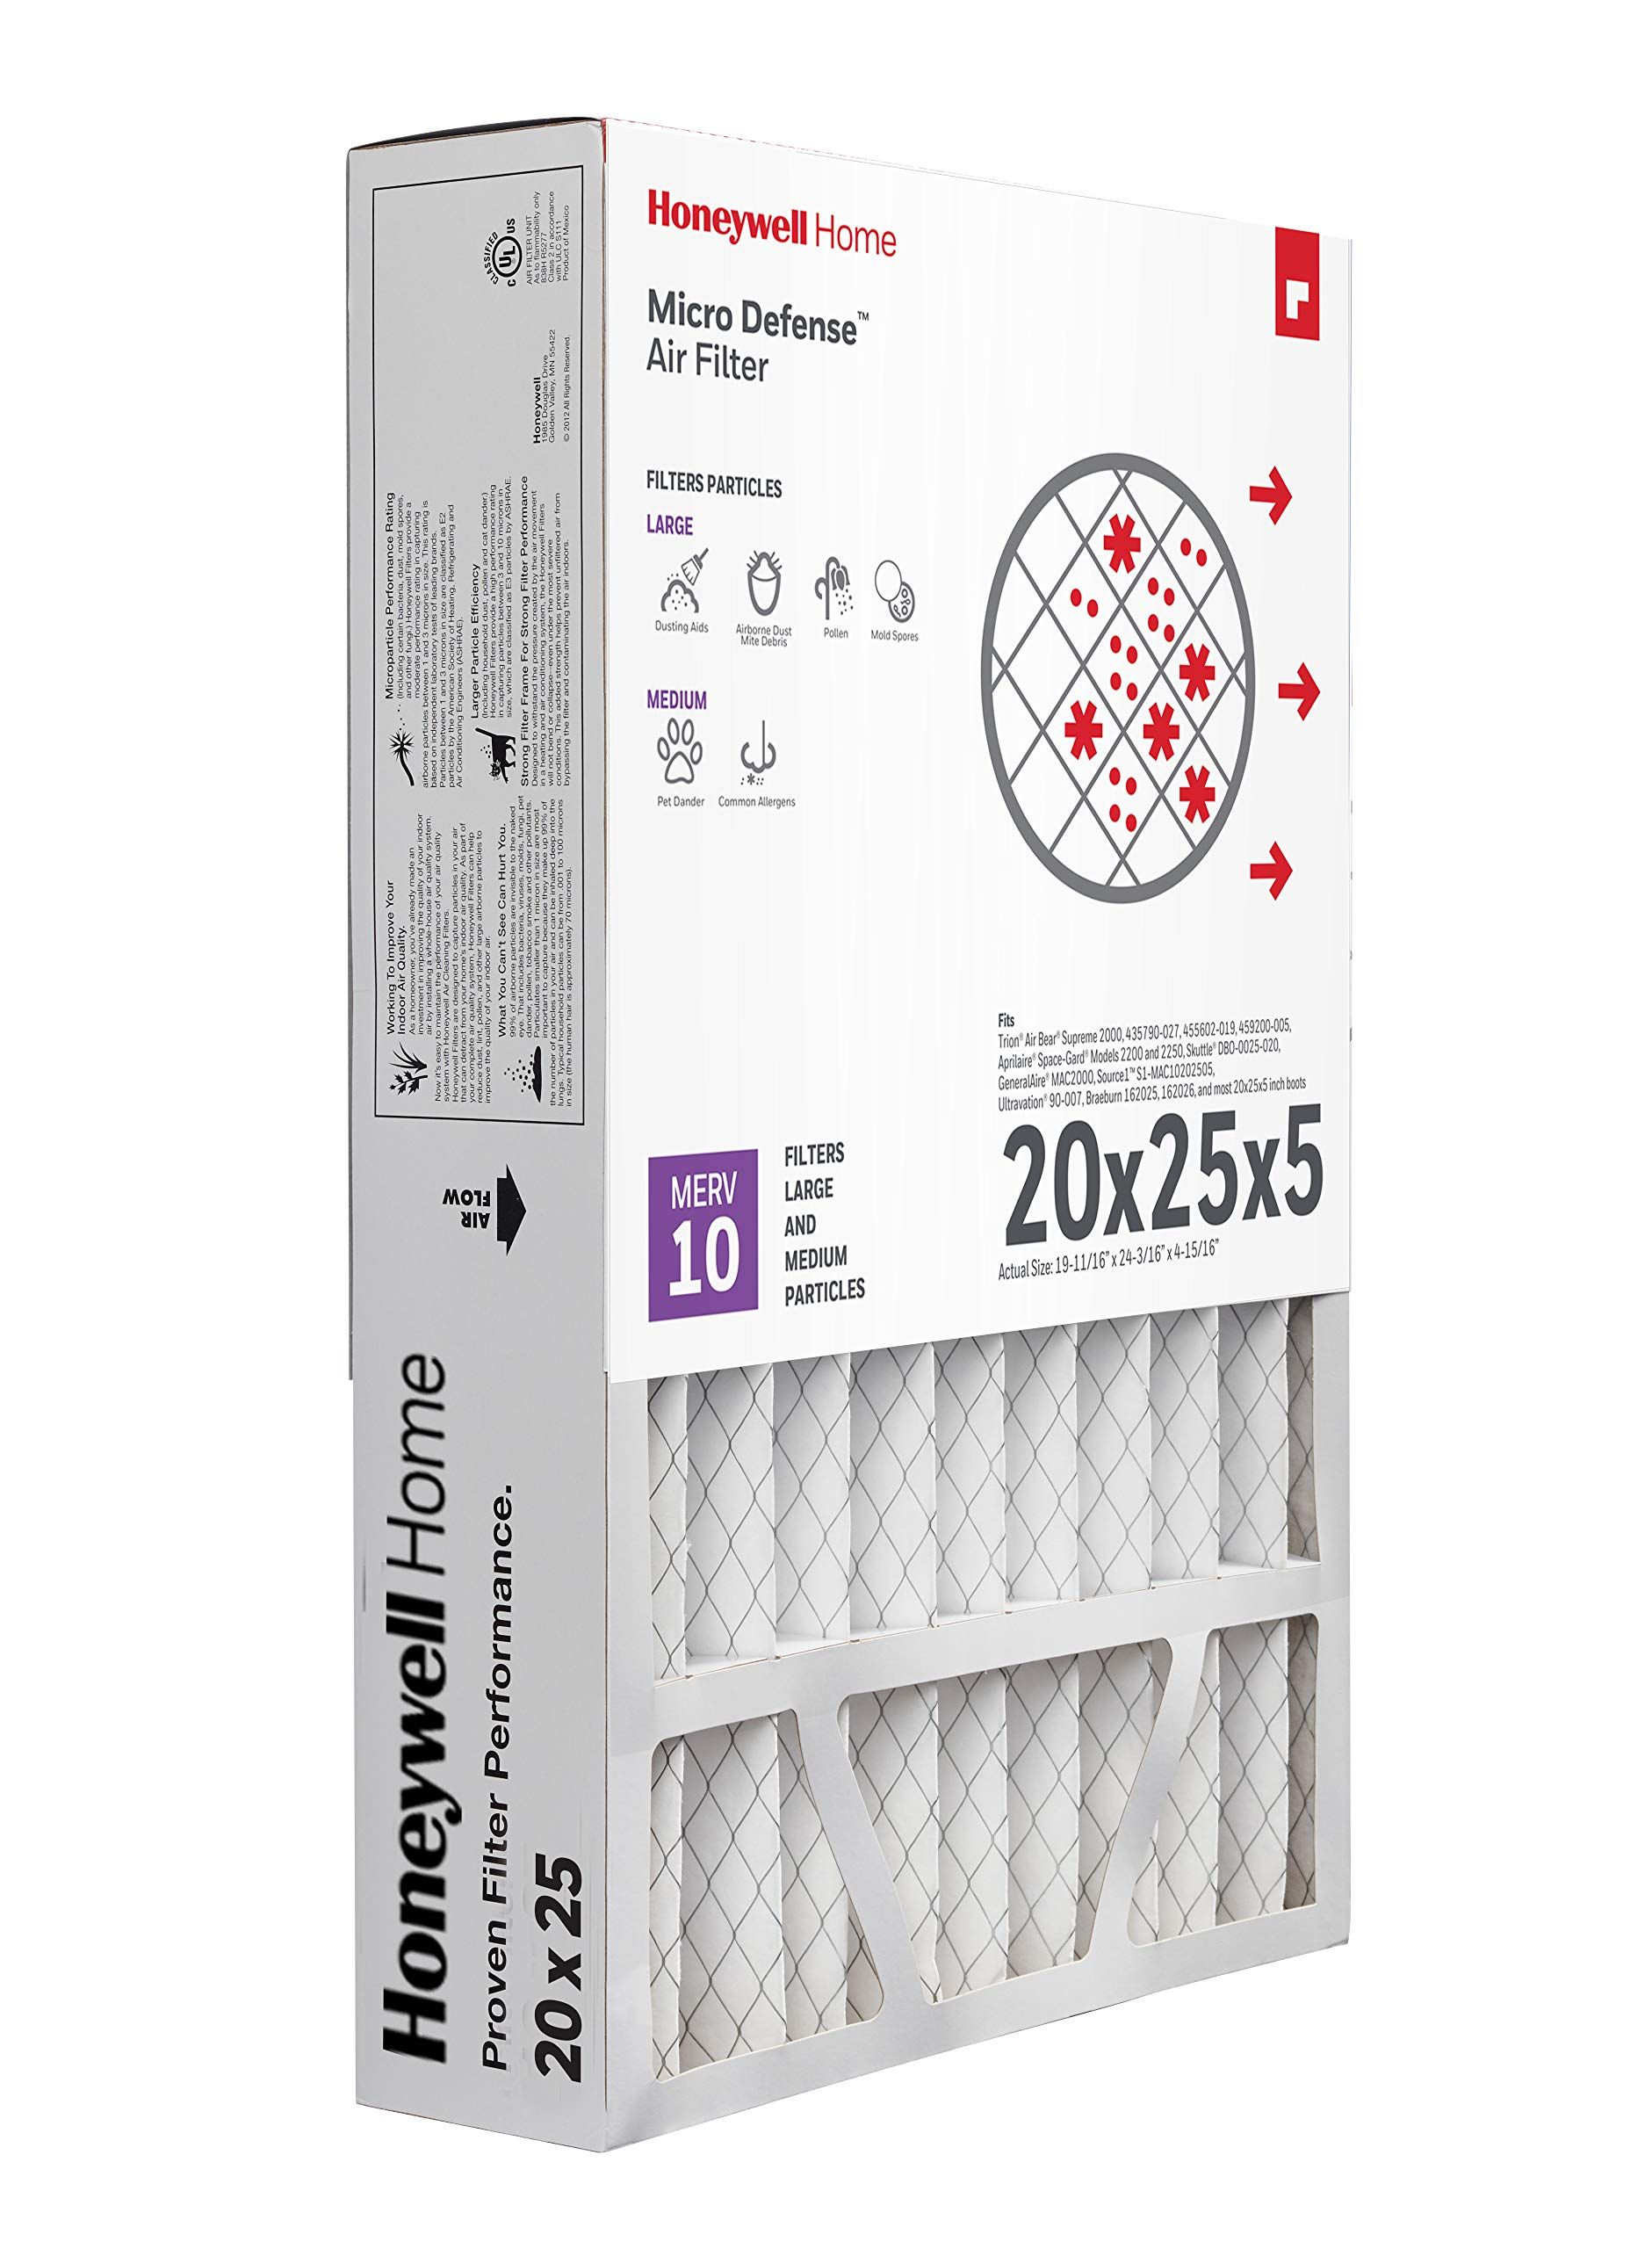 Microdefense By Honeywell Cf508a2025 Honeywell Home Microdefense Ac Furnace Air Filter 20x25x5 Merv 10 1pk Find Air Filter Ac Furnace Air Filter Lights